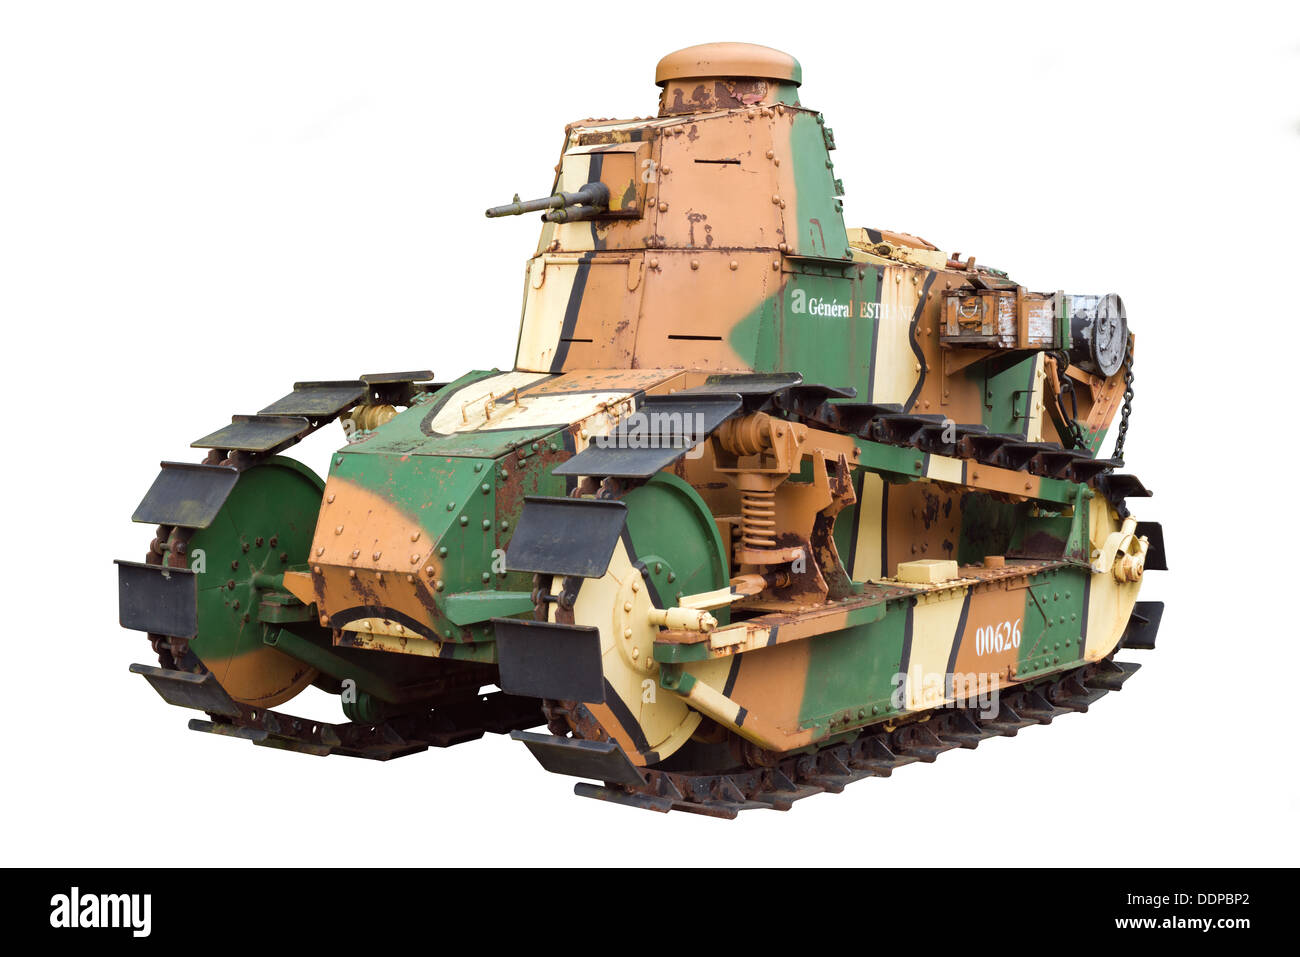 A cut out of a French, Renault FT 17 WW1 camouflaged tank - Stock Image